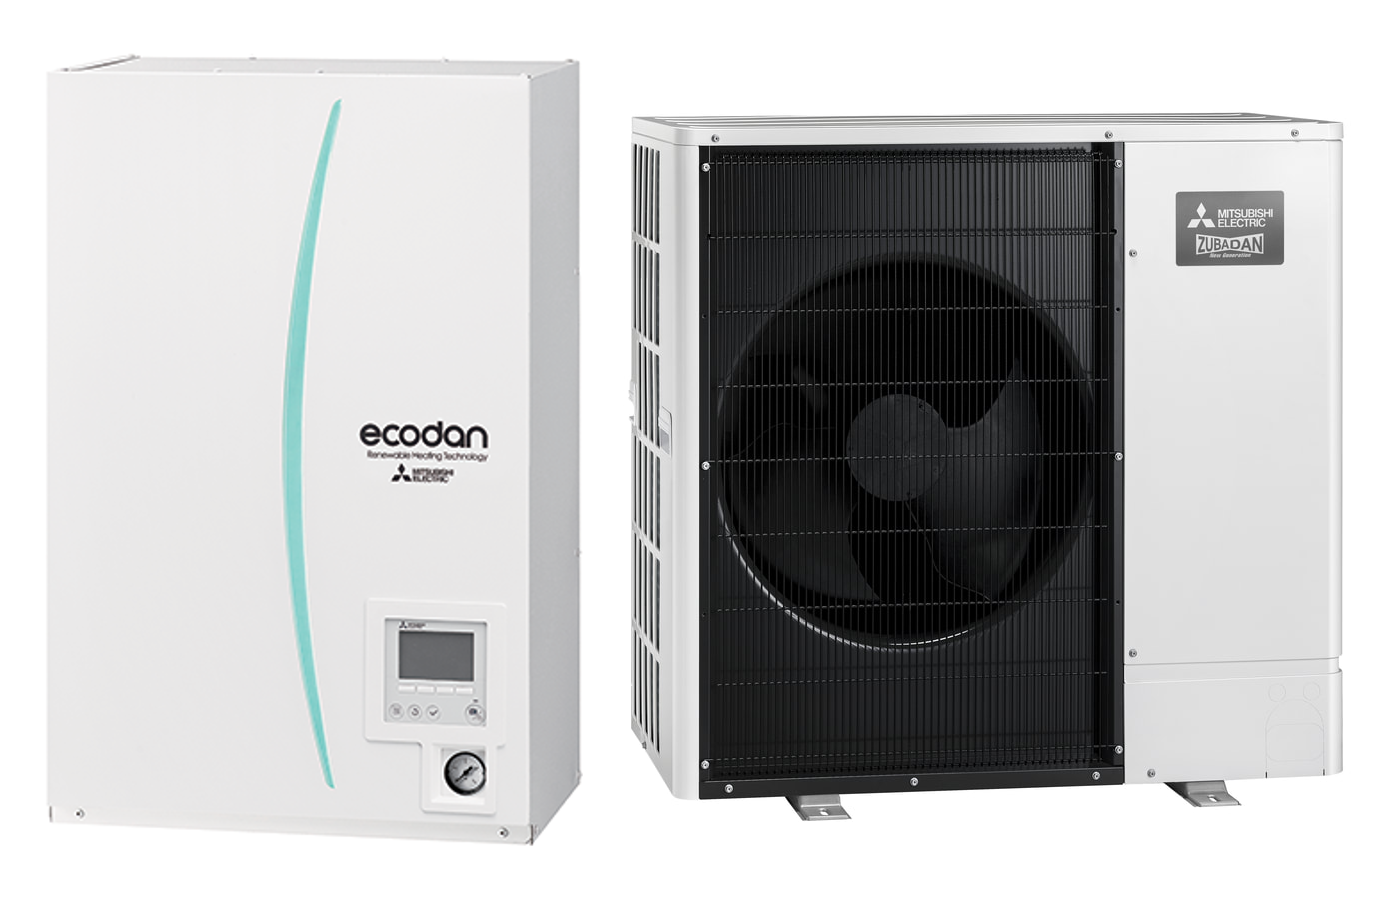 Ecodan Hydroboks + Power 7